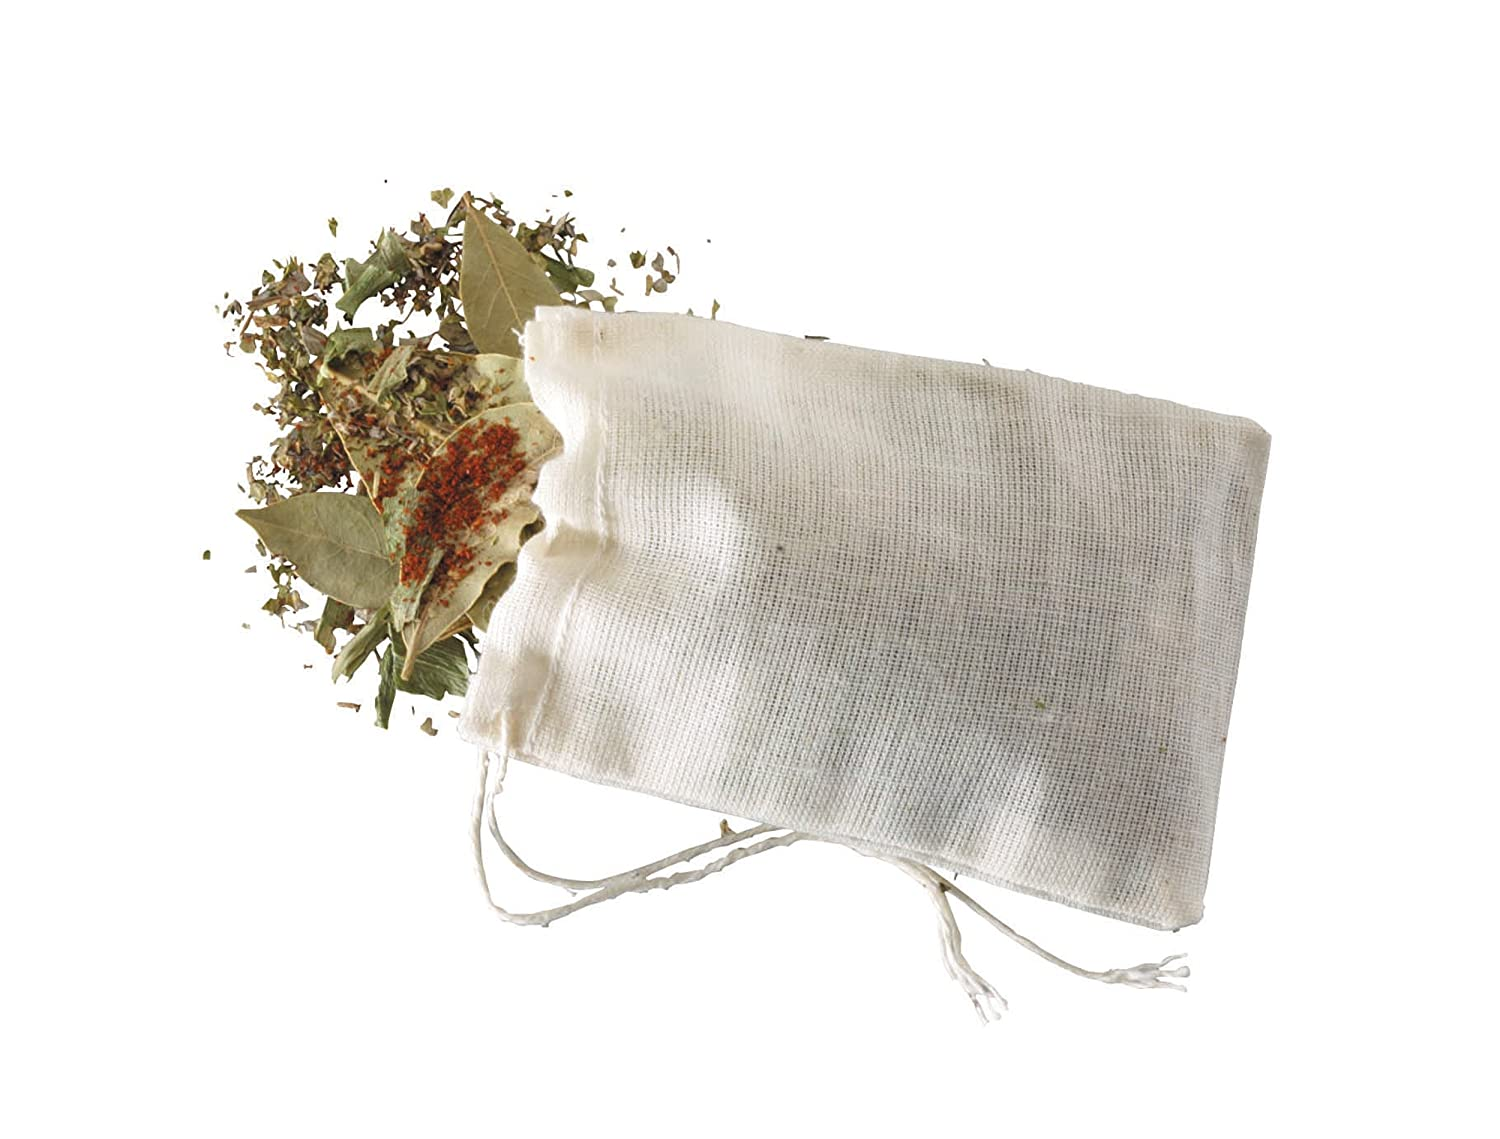 KitchenCraft Home Made Pack of 4 Spice Bags KCSPBAGS